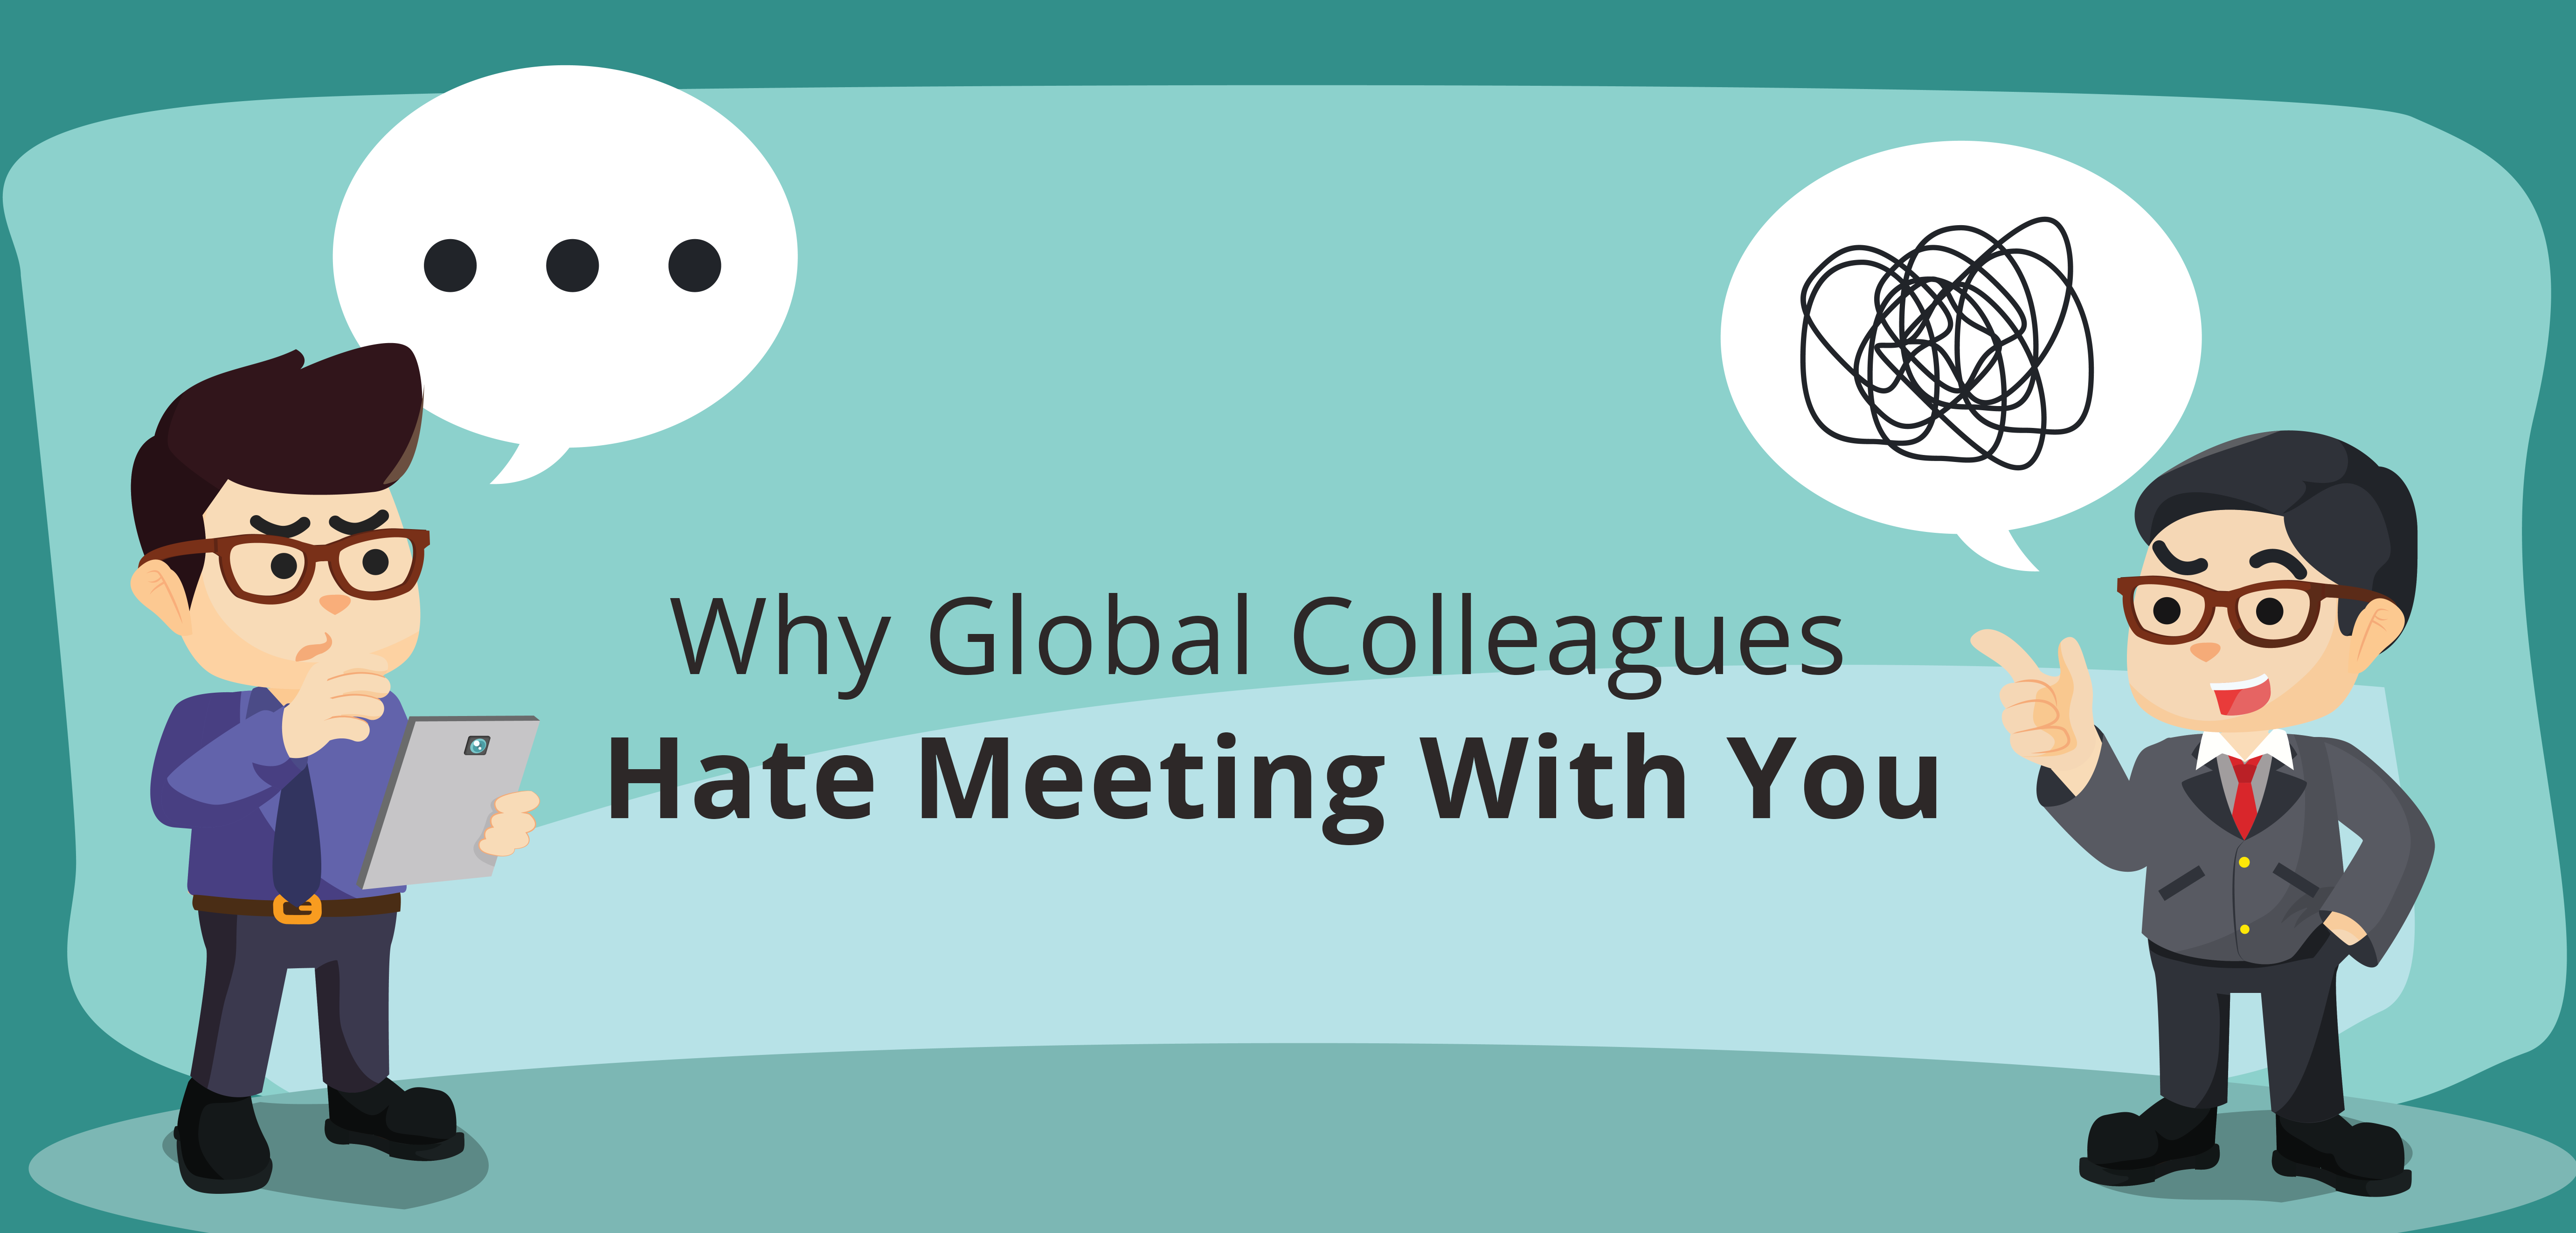 Why Your Global Colleagues Hate Meeting With You